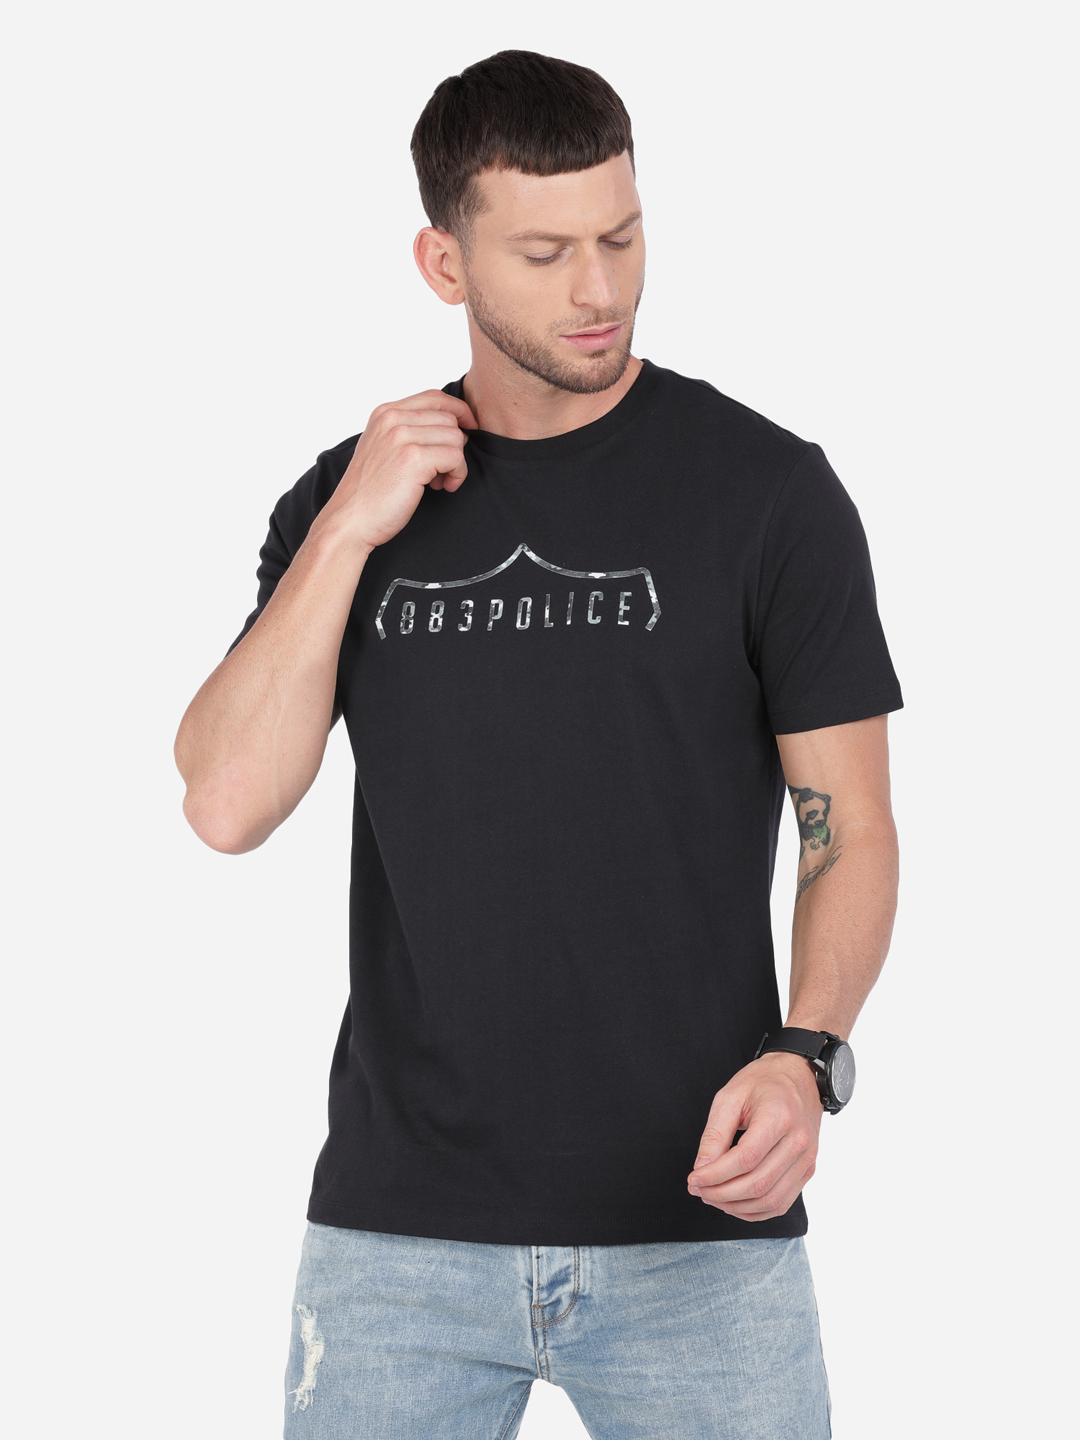 883 Police | 883 Police Milkyway India T-shirt